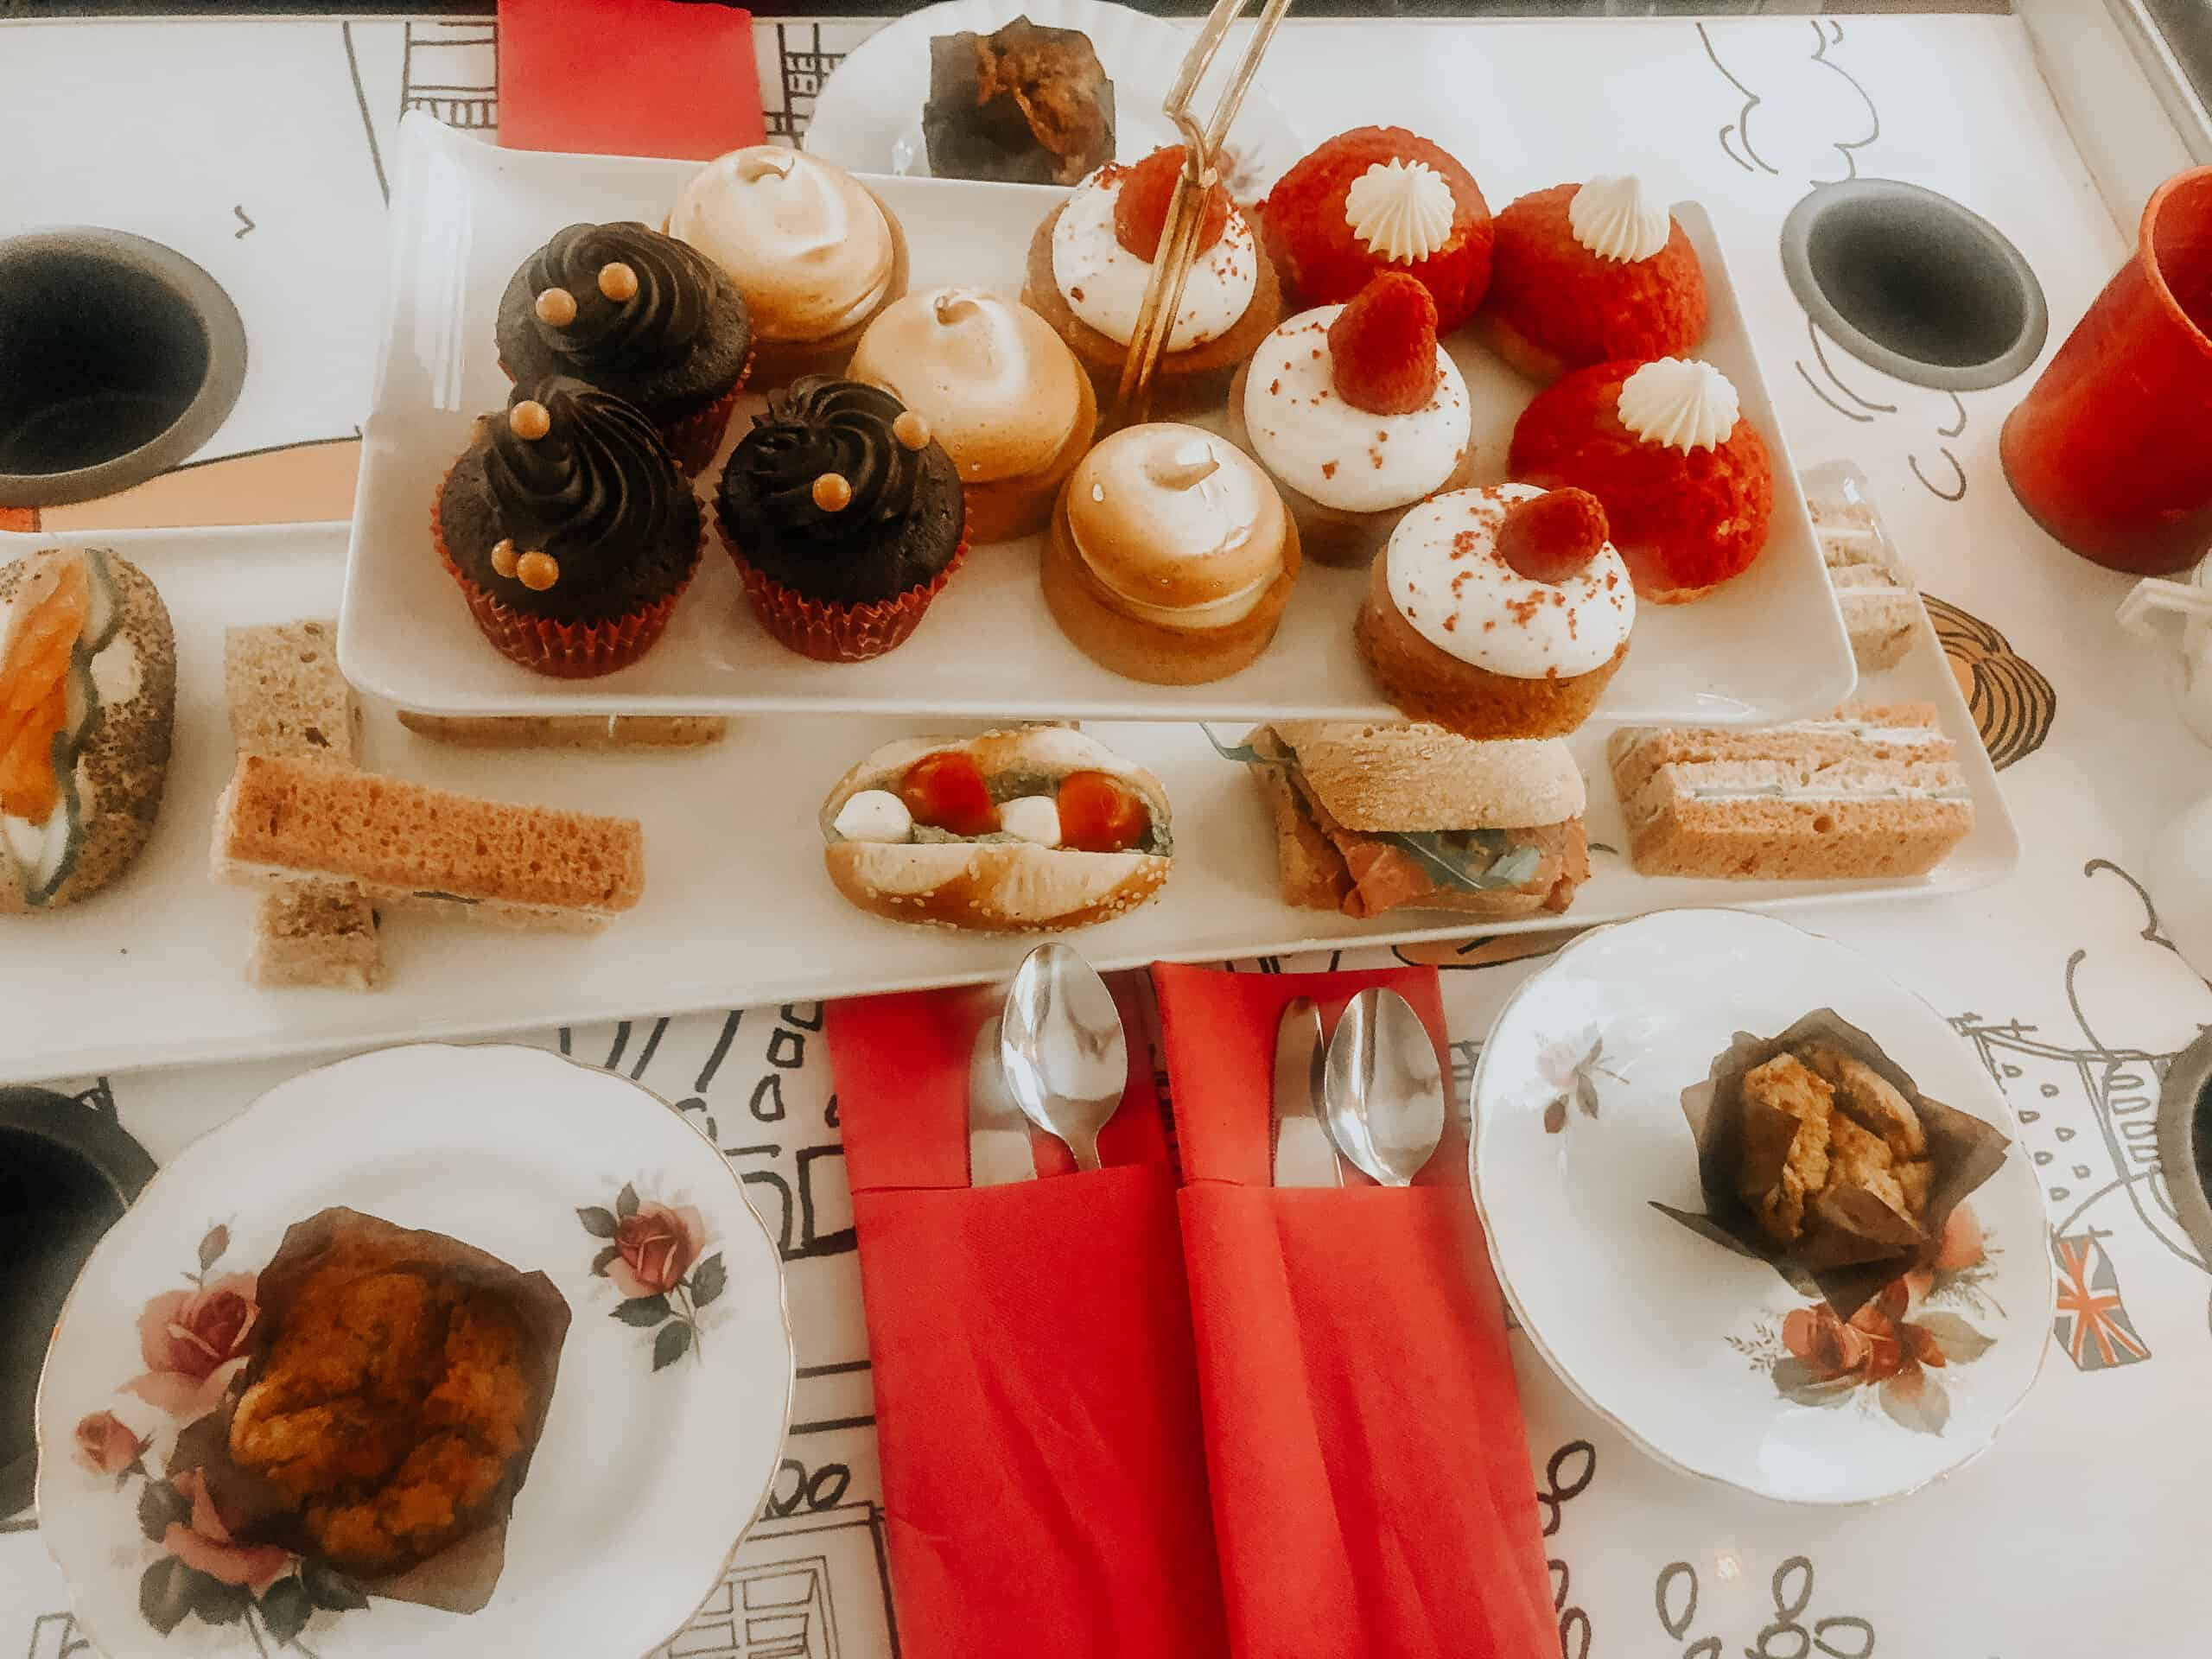 Afternoon tea arrangement on board of the Afternoon Tea Bus Tour London